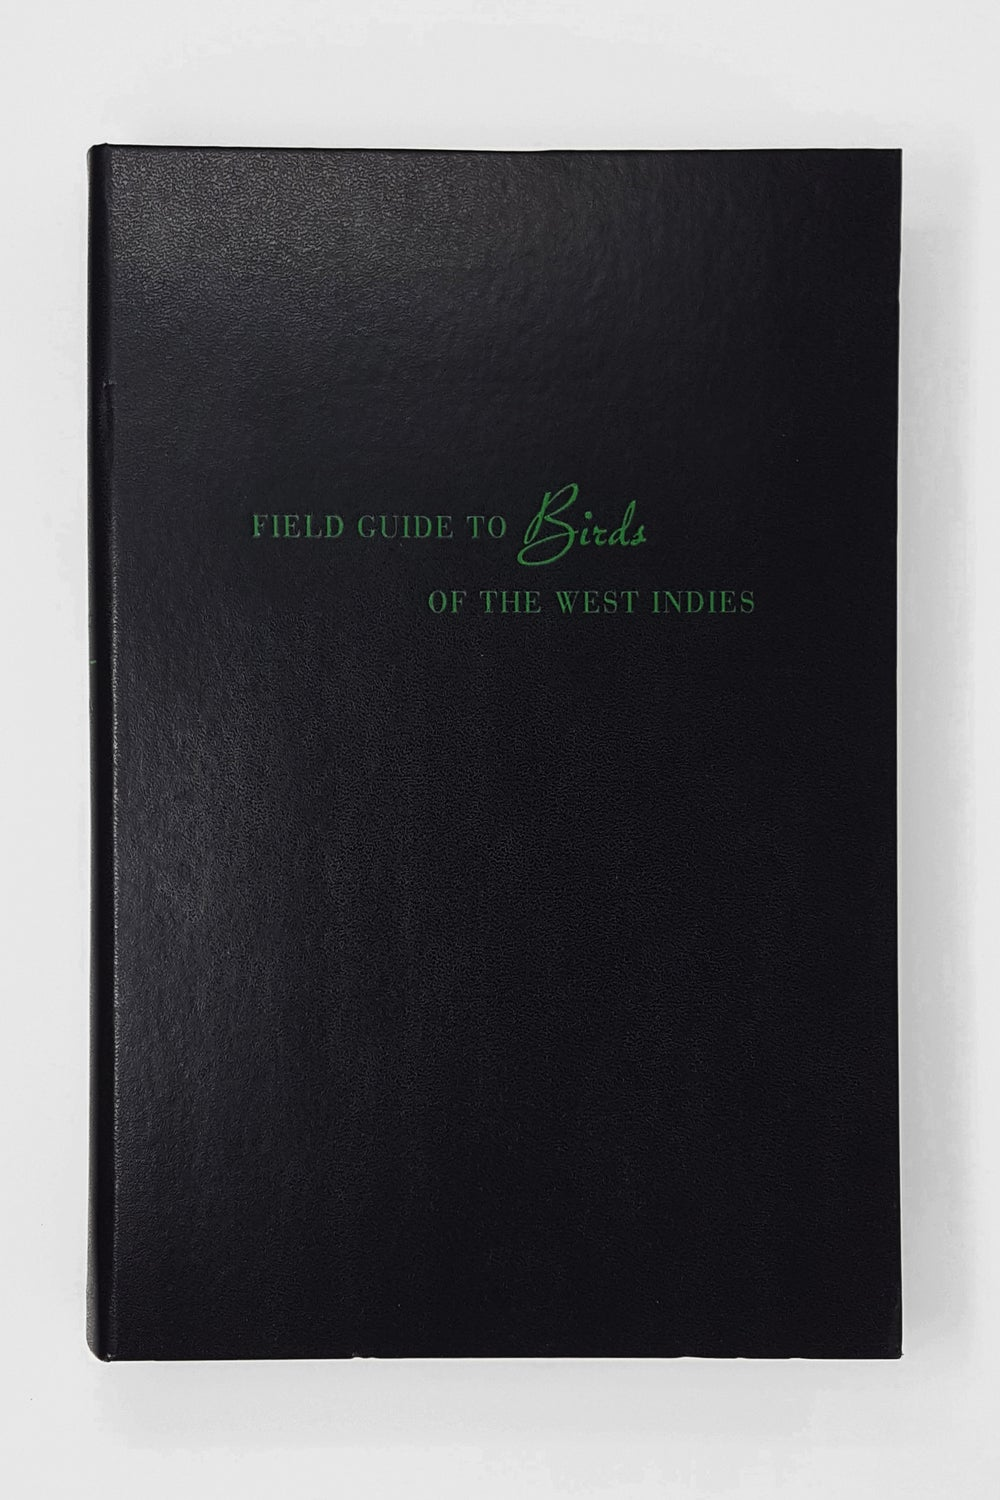 Image of Taryn Simon - Field Guide to Birds of the West Indies / 78 € - 20 %